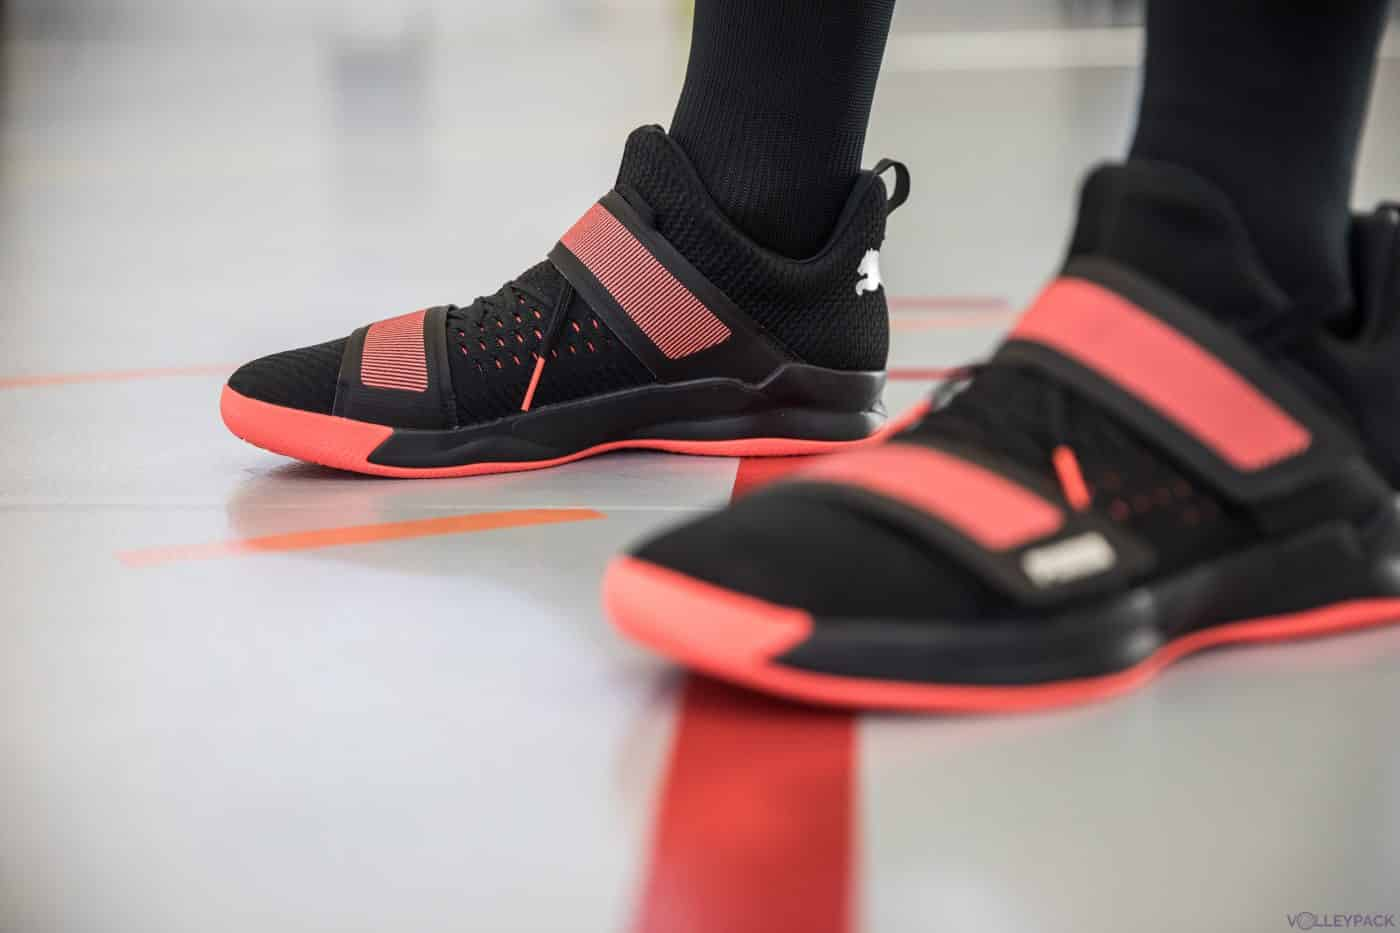 puma-rise-xt3-netfit-test-volleypack-chaussures-volley-11